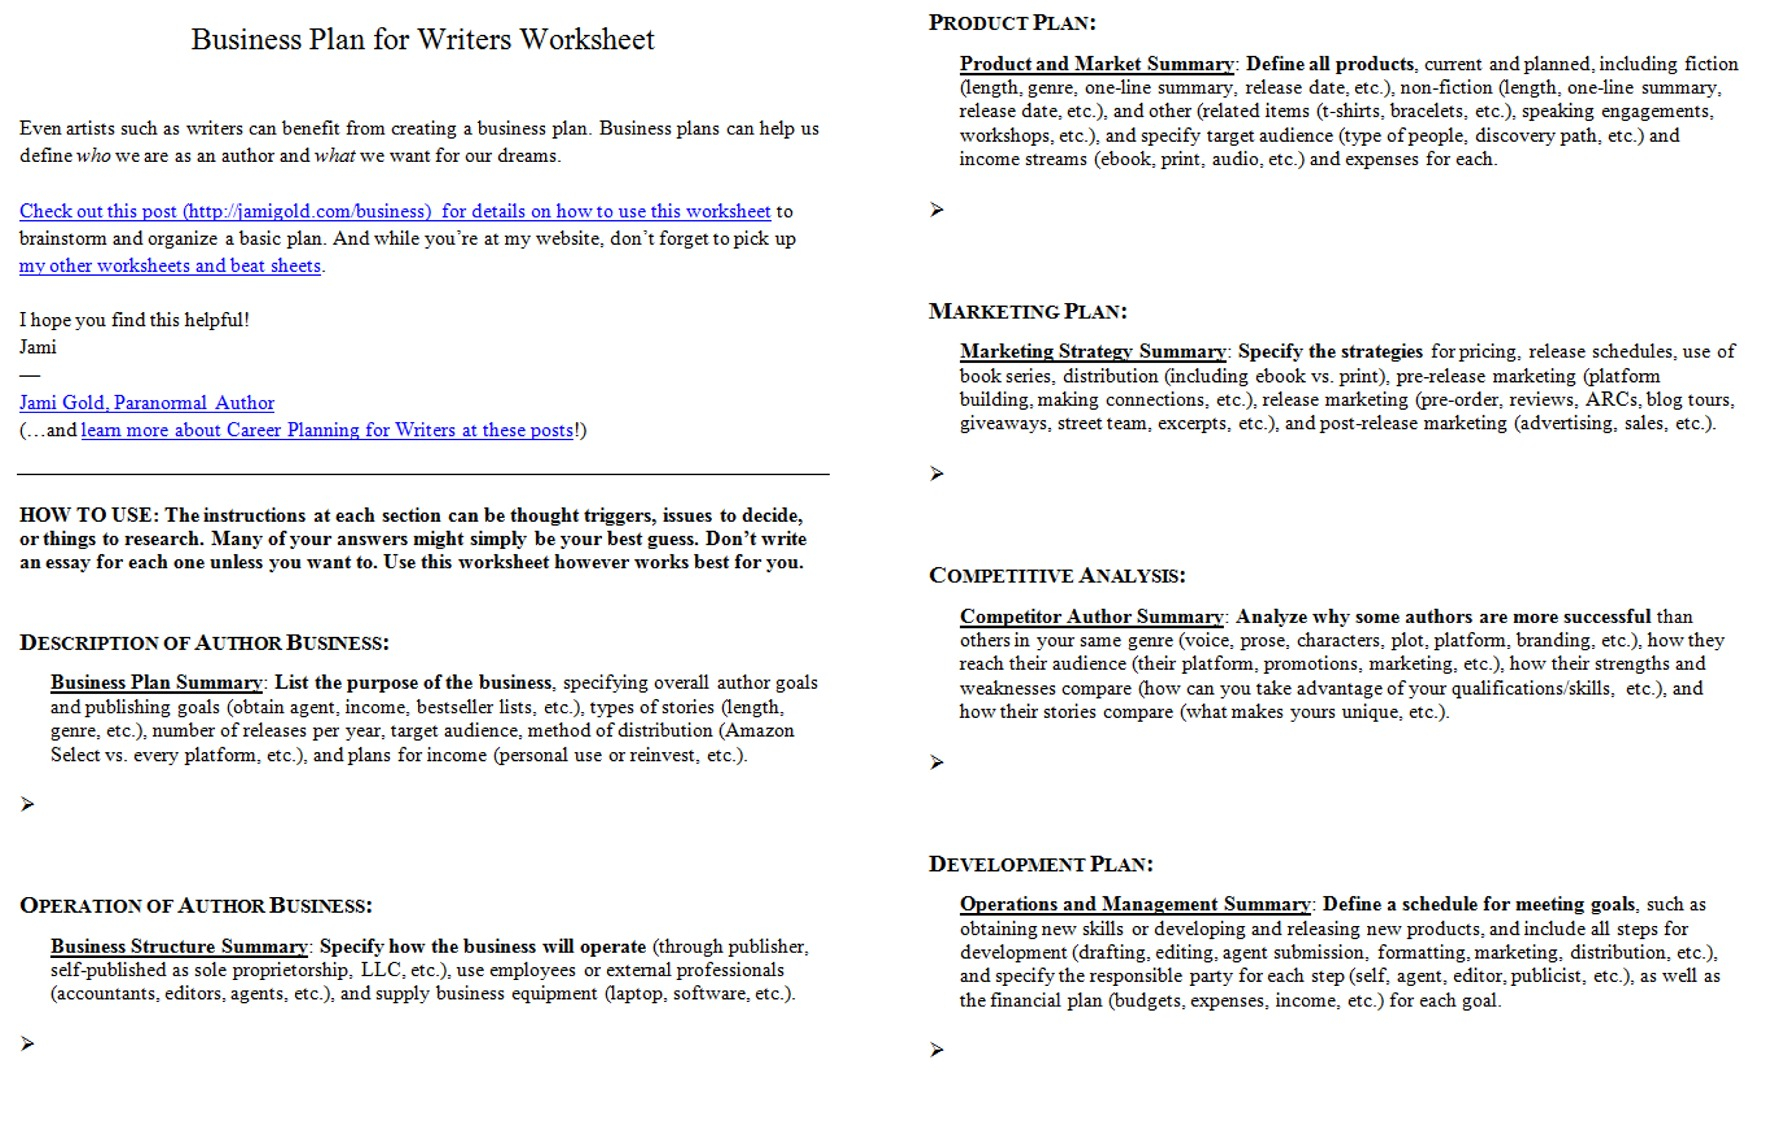 Weirdmailus  Fascinating Worksheets For Writers  Jami Gold Paranormal Author With Fair Screen Shot Of Both Pages Of The Business Plan For Writers Worksheet With Charming Hindi Matras Worksheets Also Jump Math Grade  Worksheets In Addition Worksheets For Grade  Math And Articles Grammar Worksheets As Well As Adverbs Modifying Verbs Worksheet Additionally Making Tens Worksheets From Jamigoldcom With Weirdmailus  Fair Worksheets For Writers  Jami Gold Paranormal Author With Charming Screen Shot Of Both Pages Of The Business Plan For Writers Worksheet And Fascinating Hindi Matras Worksheets Also Jump Math Grade  Worksheets In Addition Worksheets For Grade  Math From Jamigoldcom